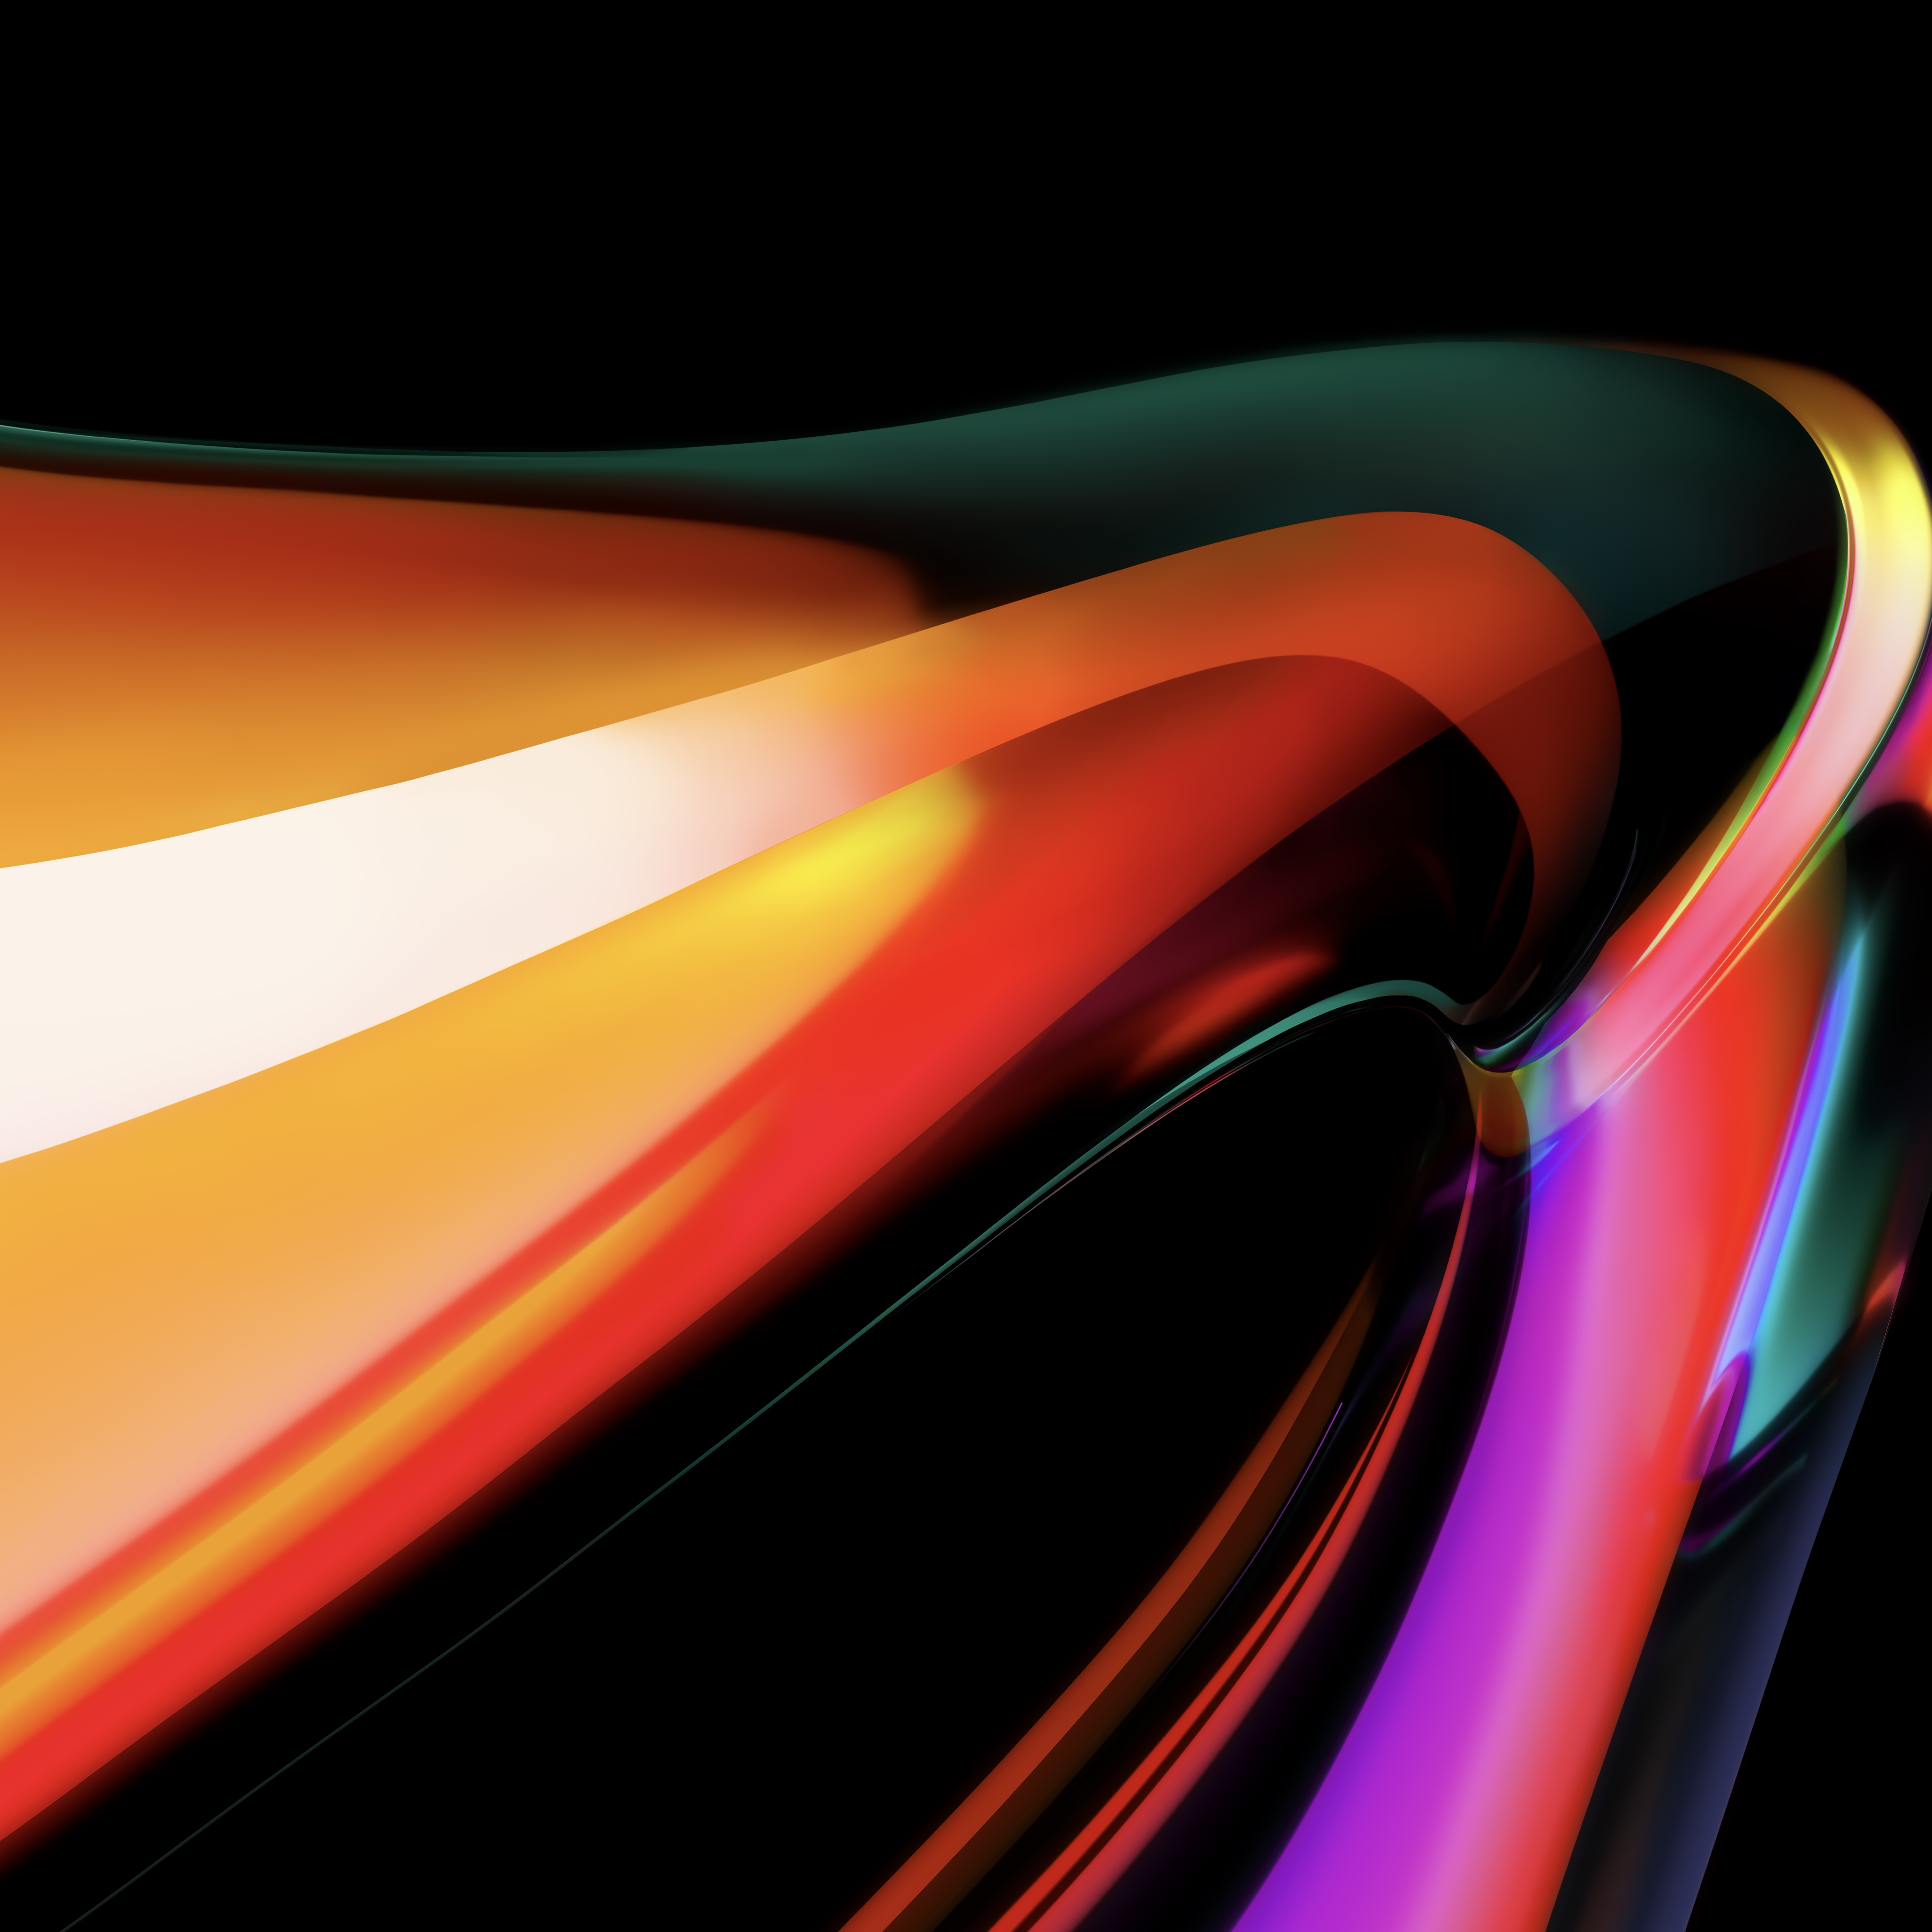 16 Inch Macbook Pro Includes Exclusive Colorful Wallpapers Download Here 9to5mac